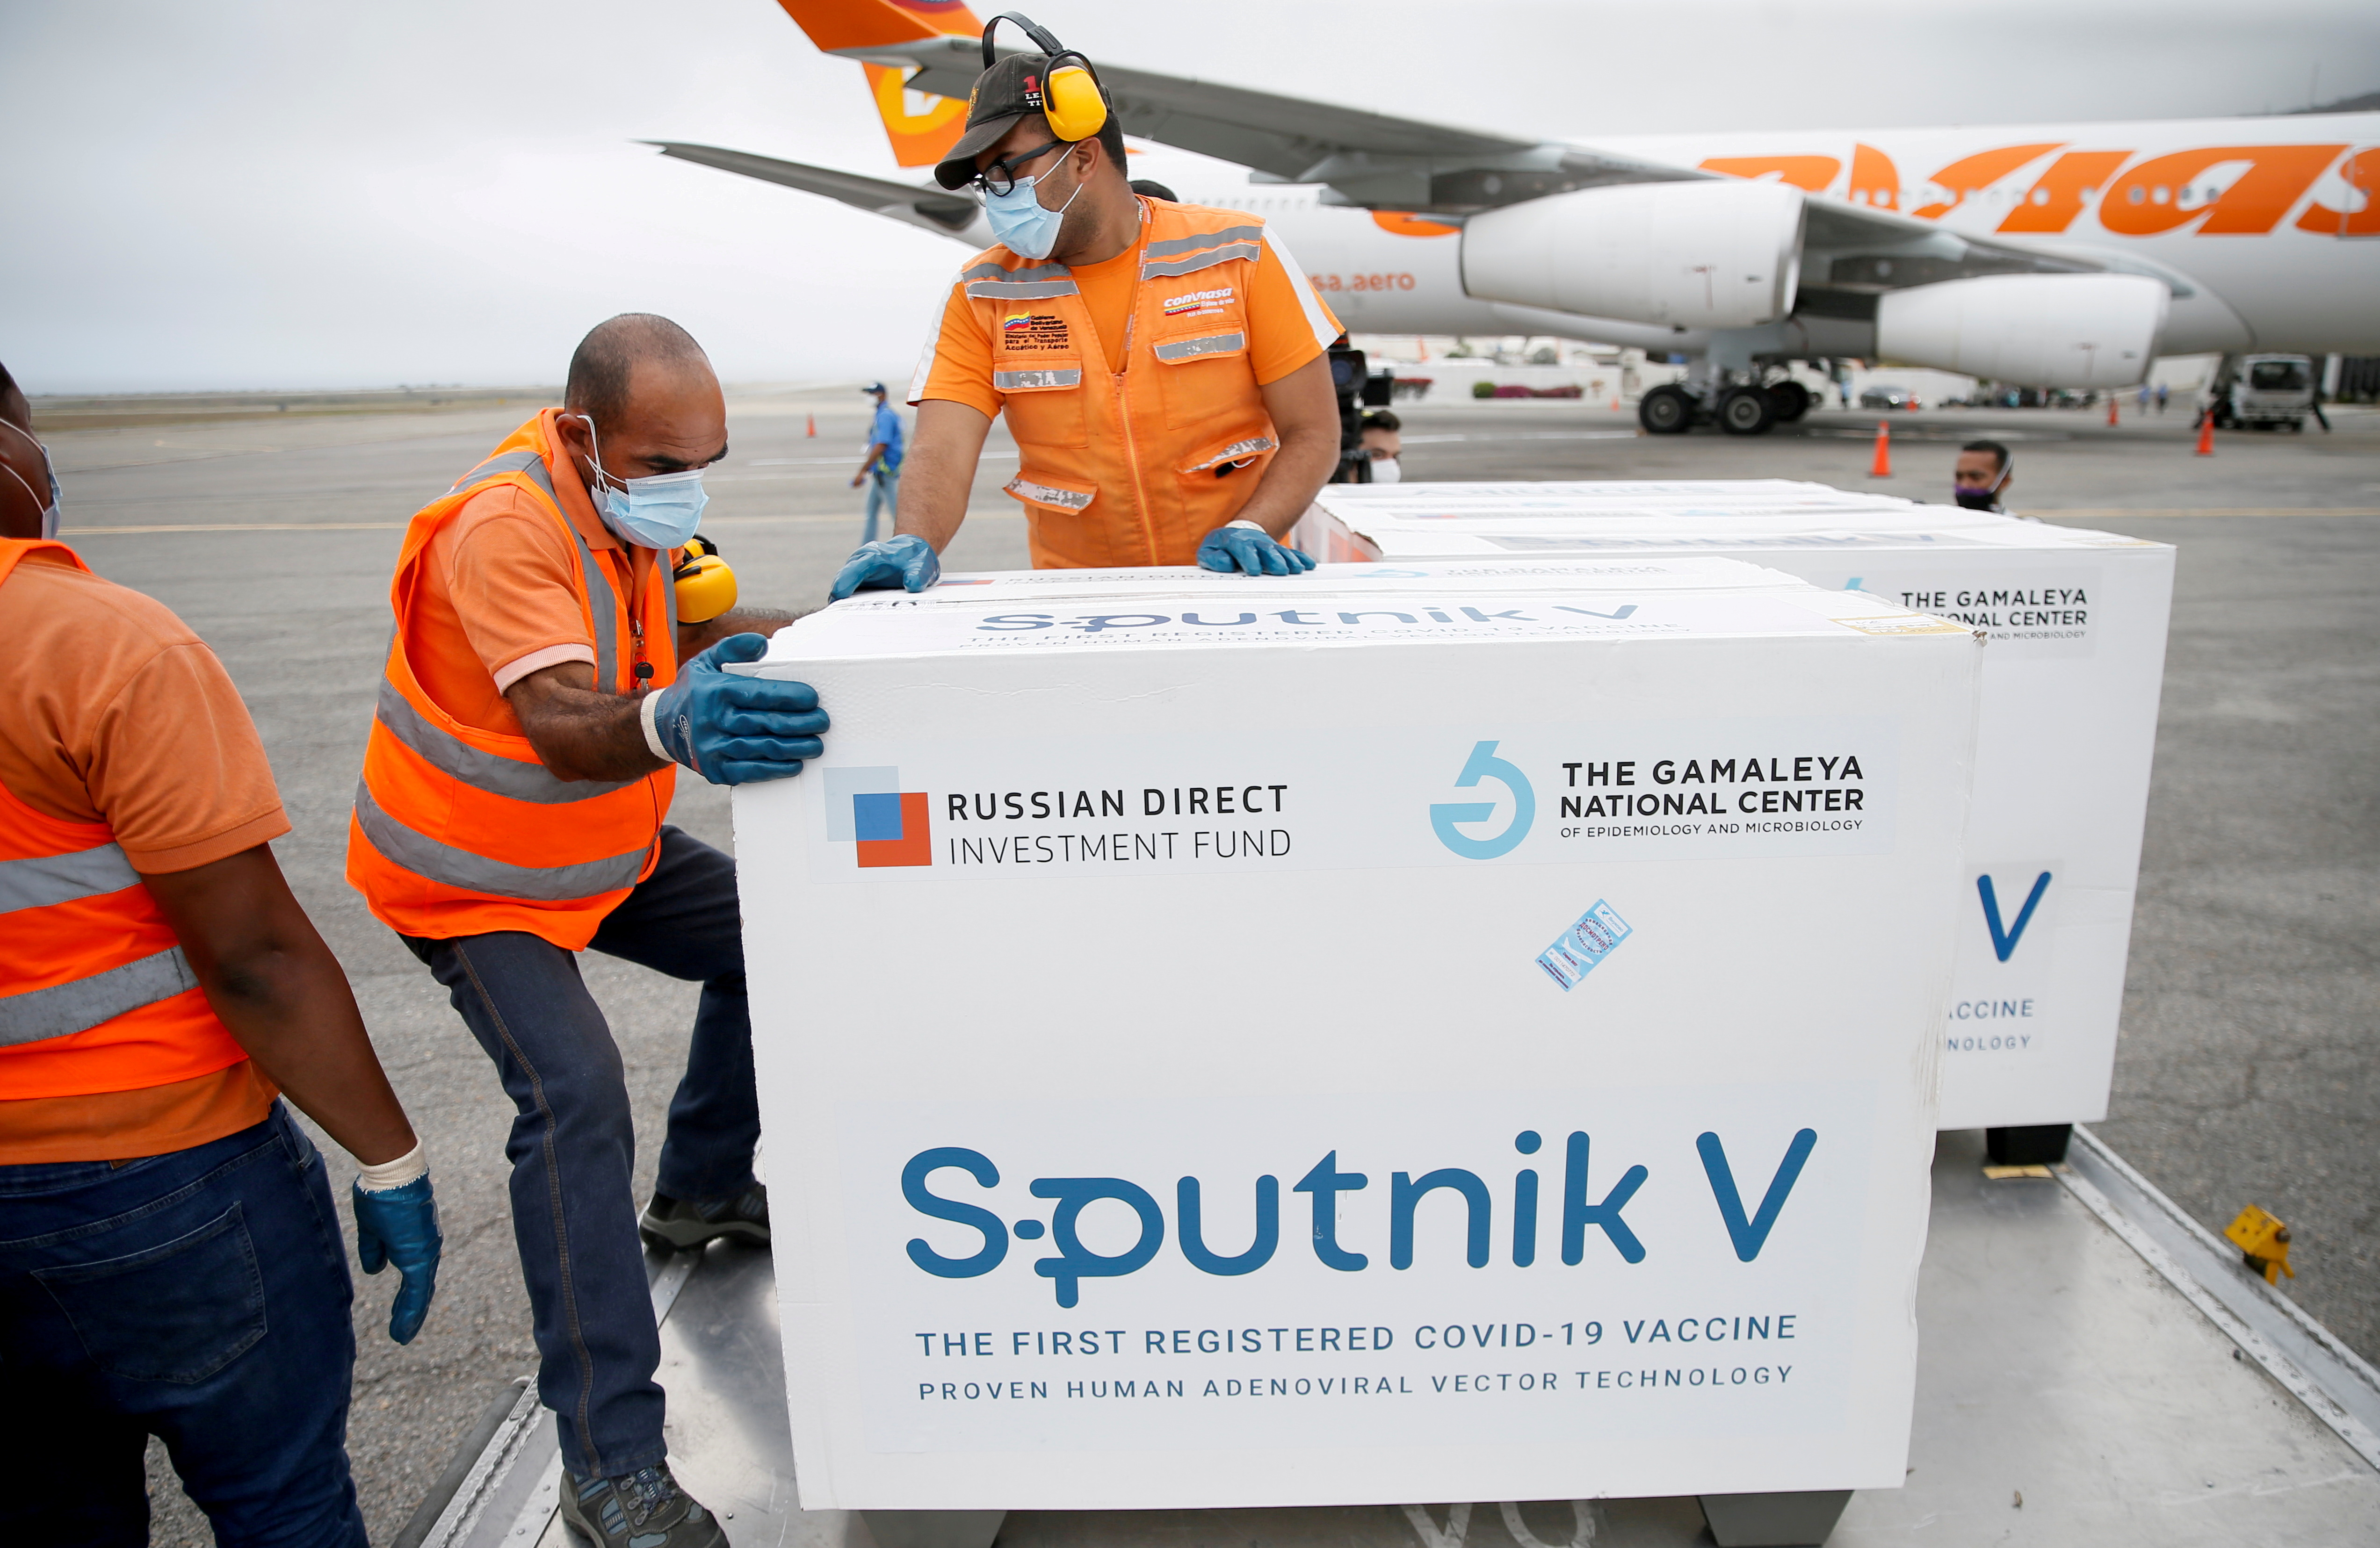 Workers take care of the shipment of Russia's Sputnik V vaccine against the coronavirus disease (COVID-19) at the airport, in Caracas, Venezuela March 29, 2021. REUTERS/Manaure Quintero/File Photo